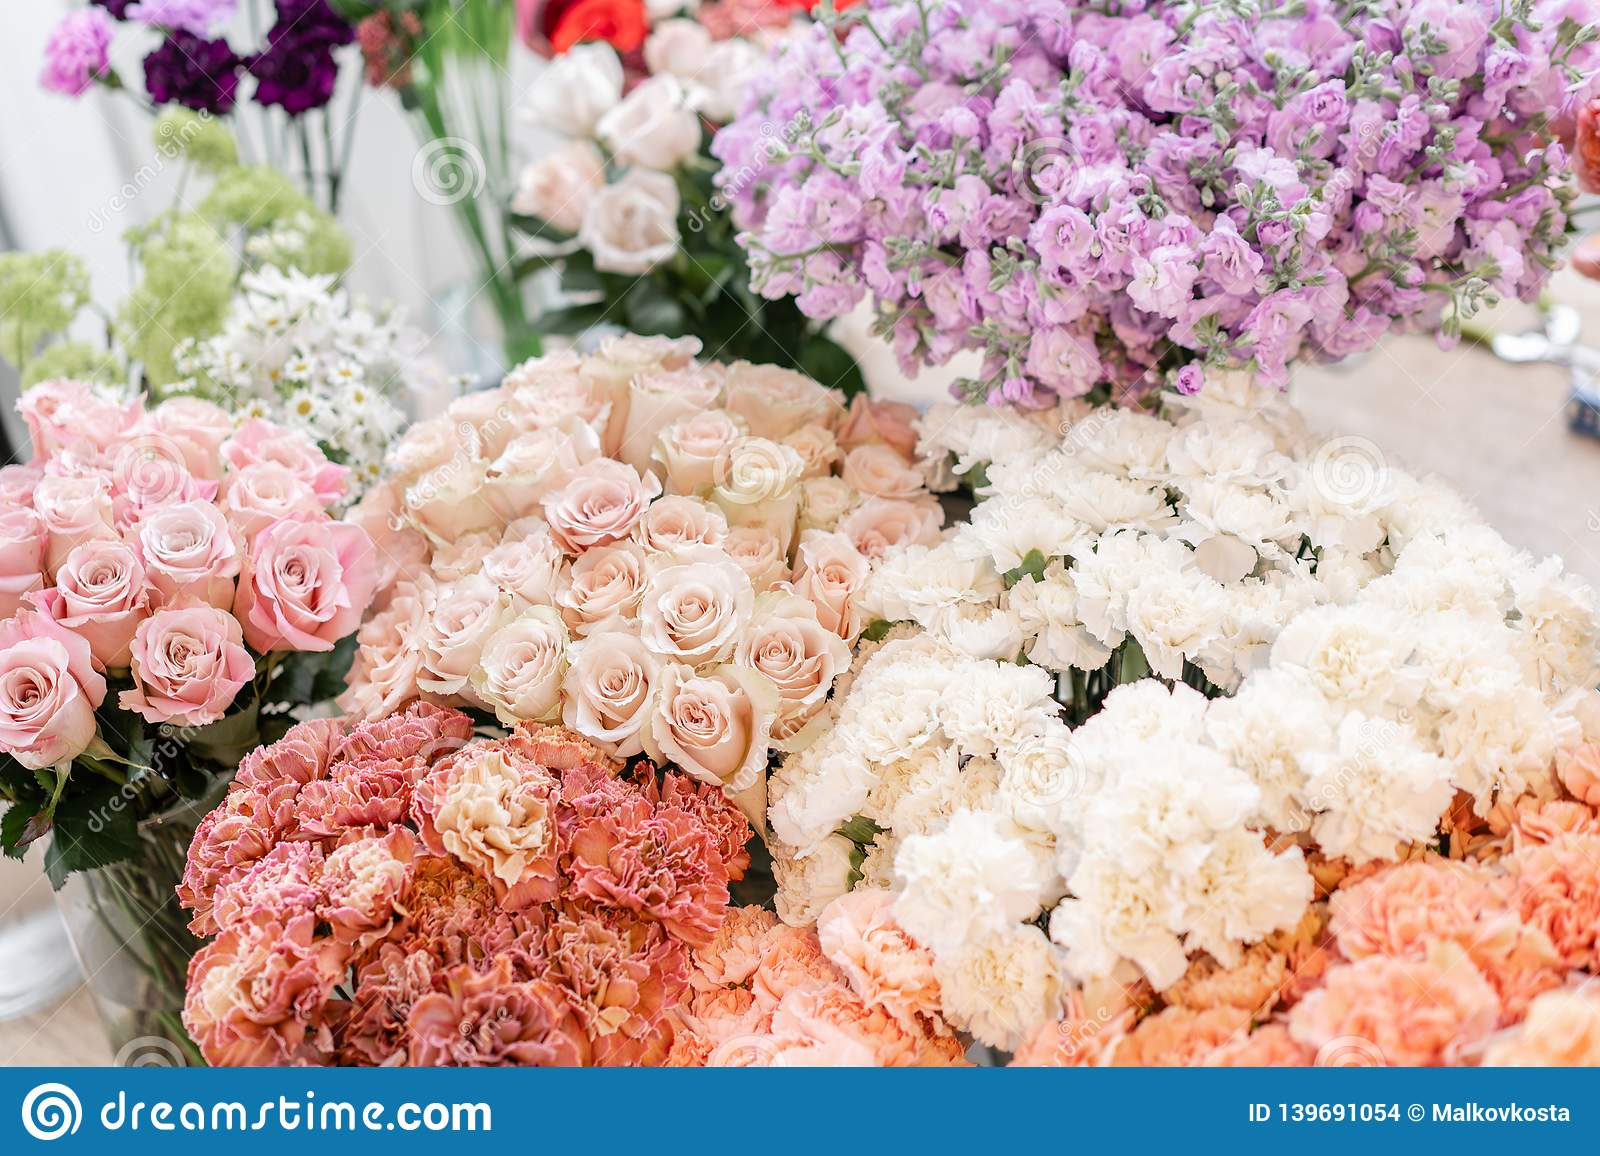 Floral carpet, flower texture, shop concept. Beautiful fresh blossoming flowers roses, spray roses, lilac gillyflower